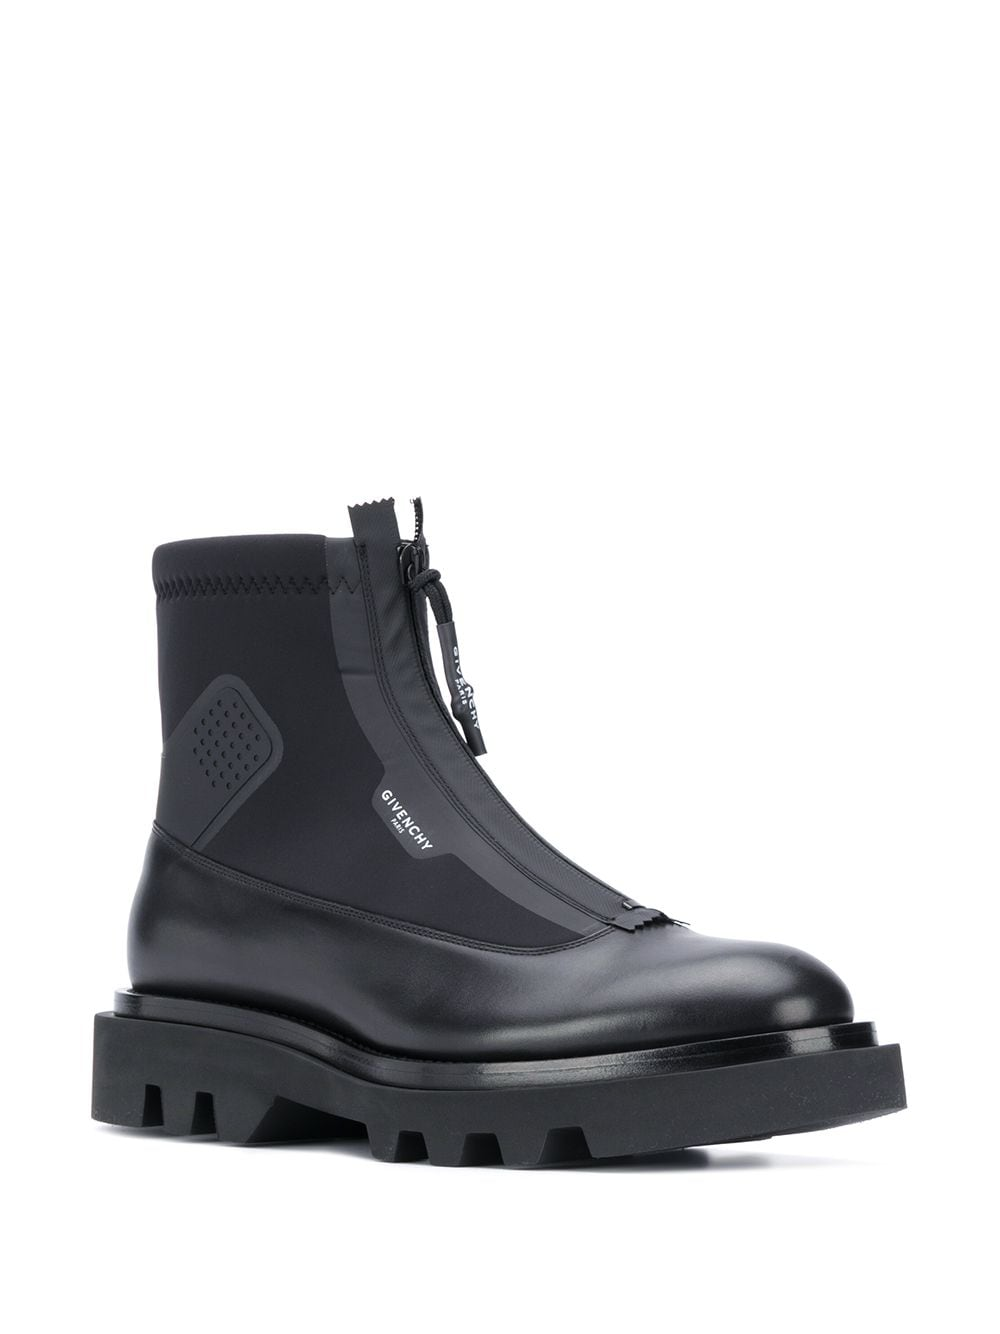 GIVENCHY GIVENCHY | Ankle-Boots | BH601ZH0NN001